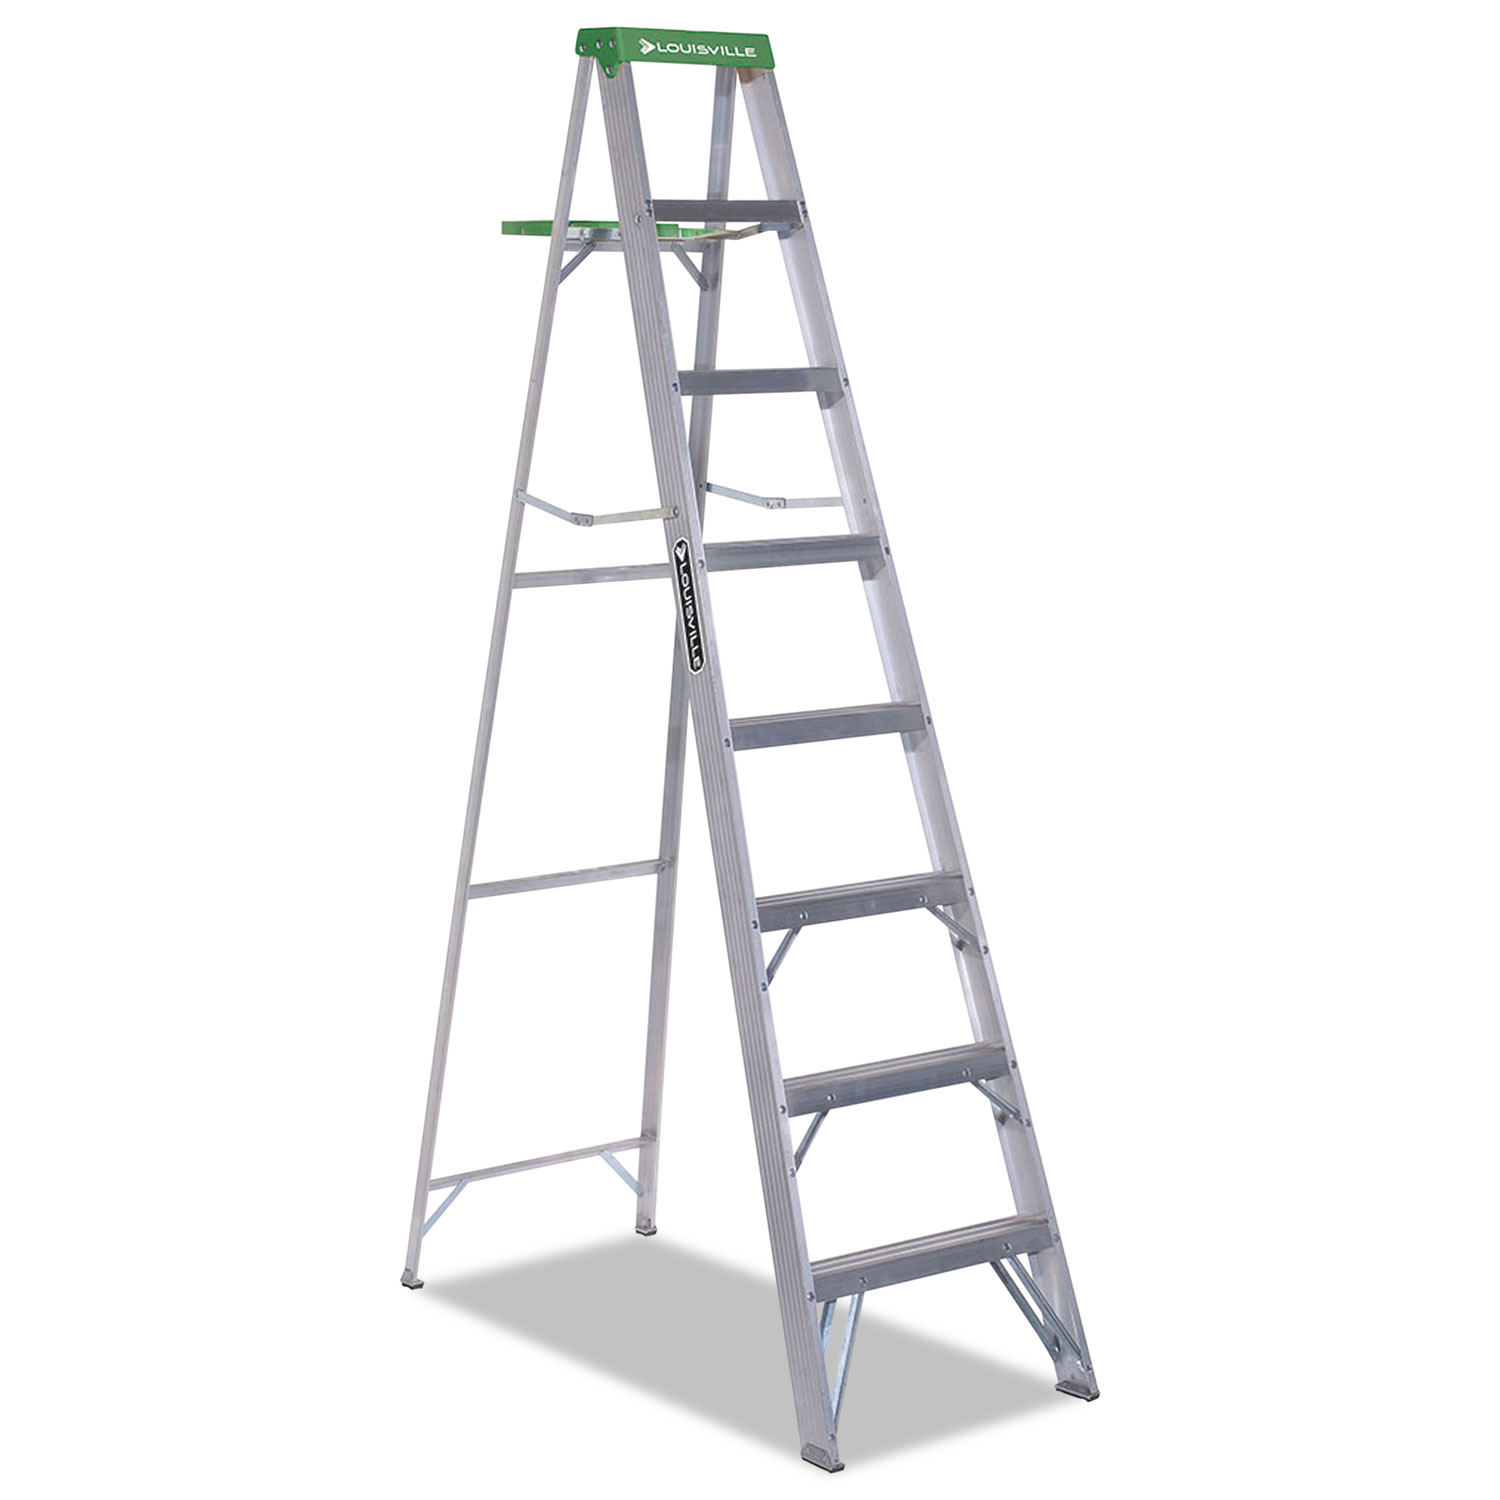 Aluminum Step Ladder, 8 ft Working Height, 225 lbs Capacity